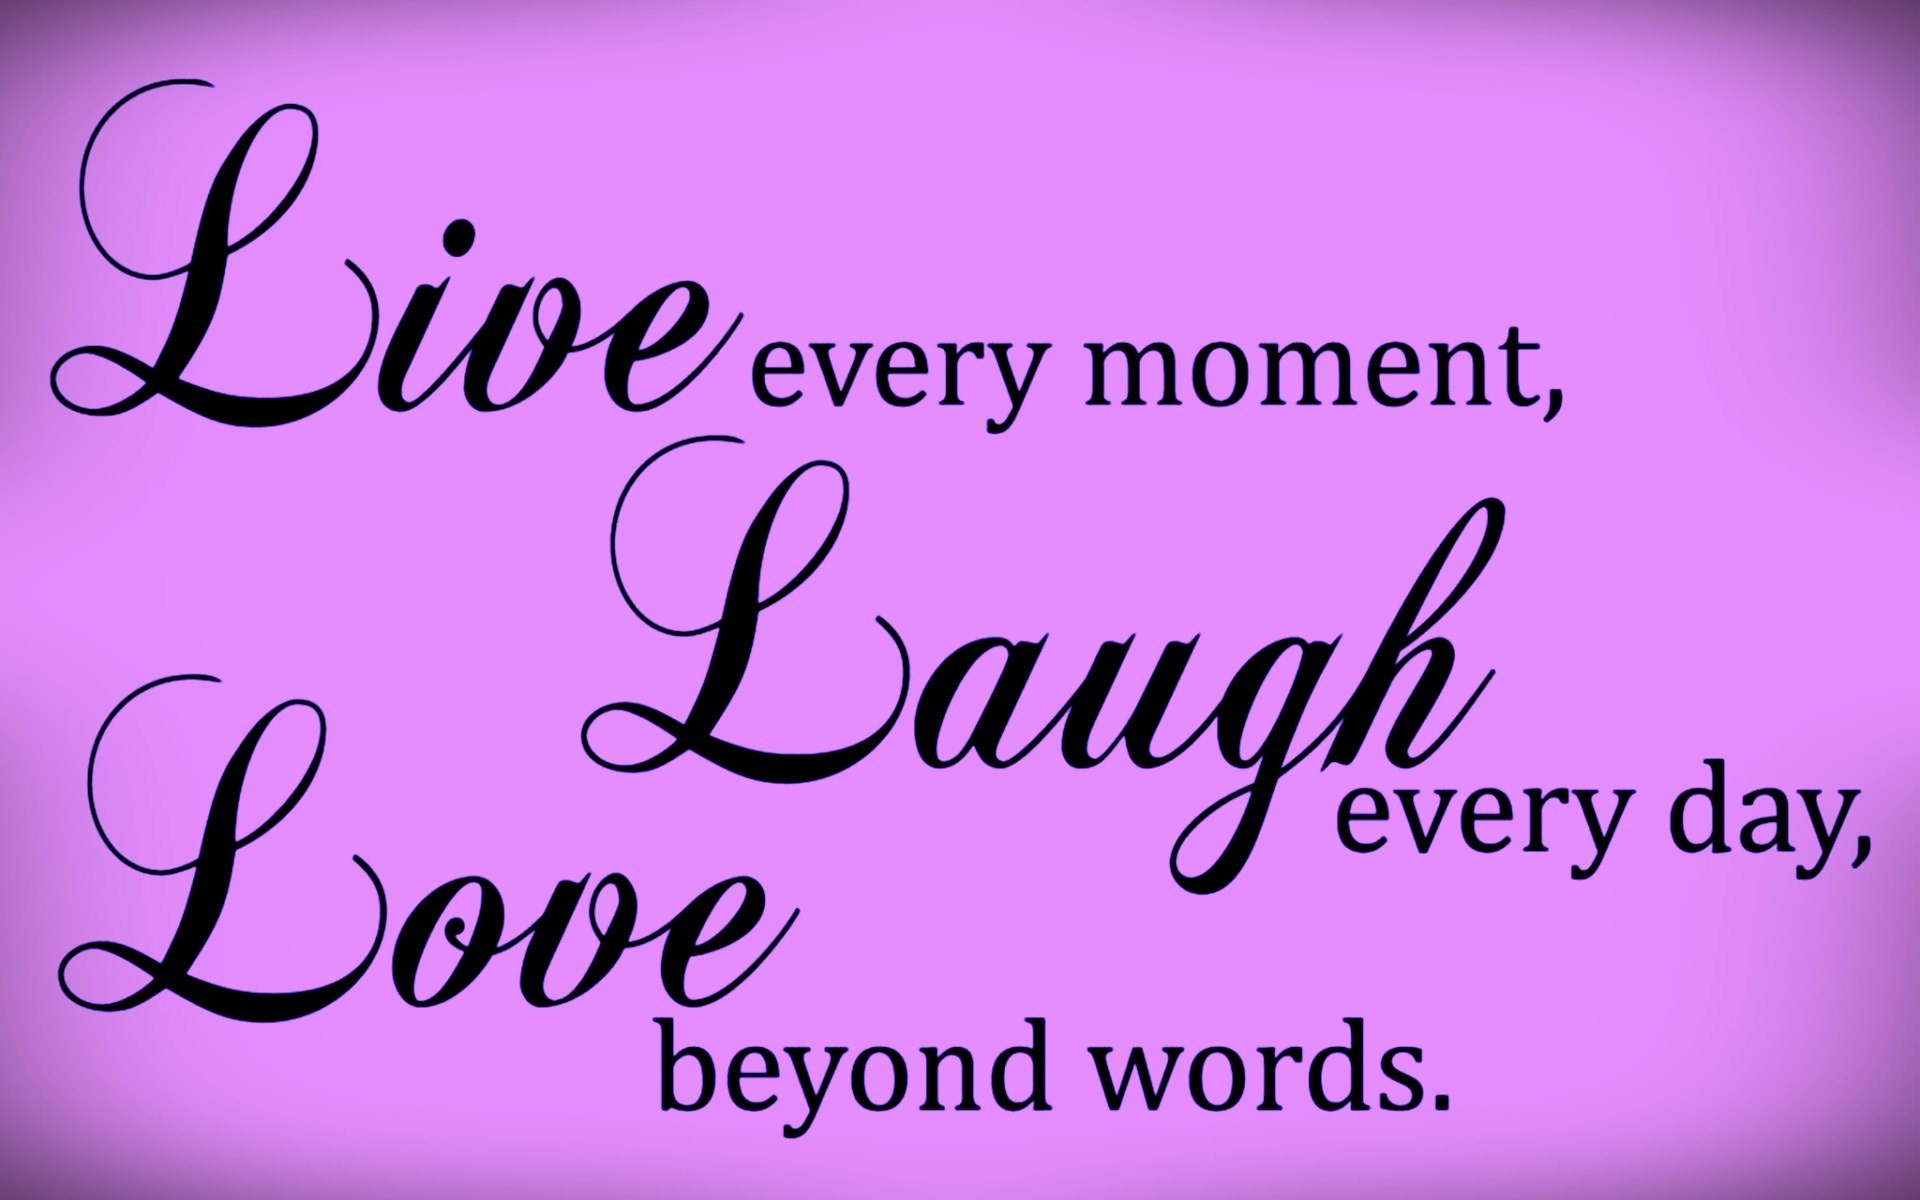 Live Laugh Love Wallpaper Desktop Background : Live Laugh Love Desktop Wallpaper (57+ images)